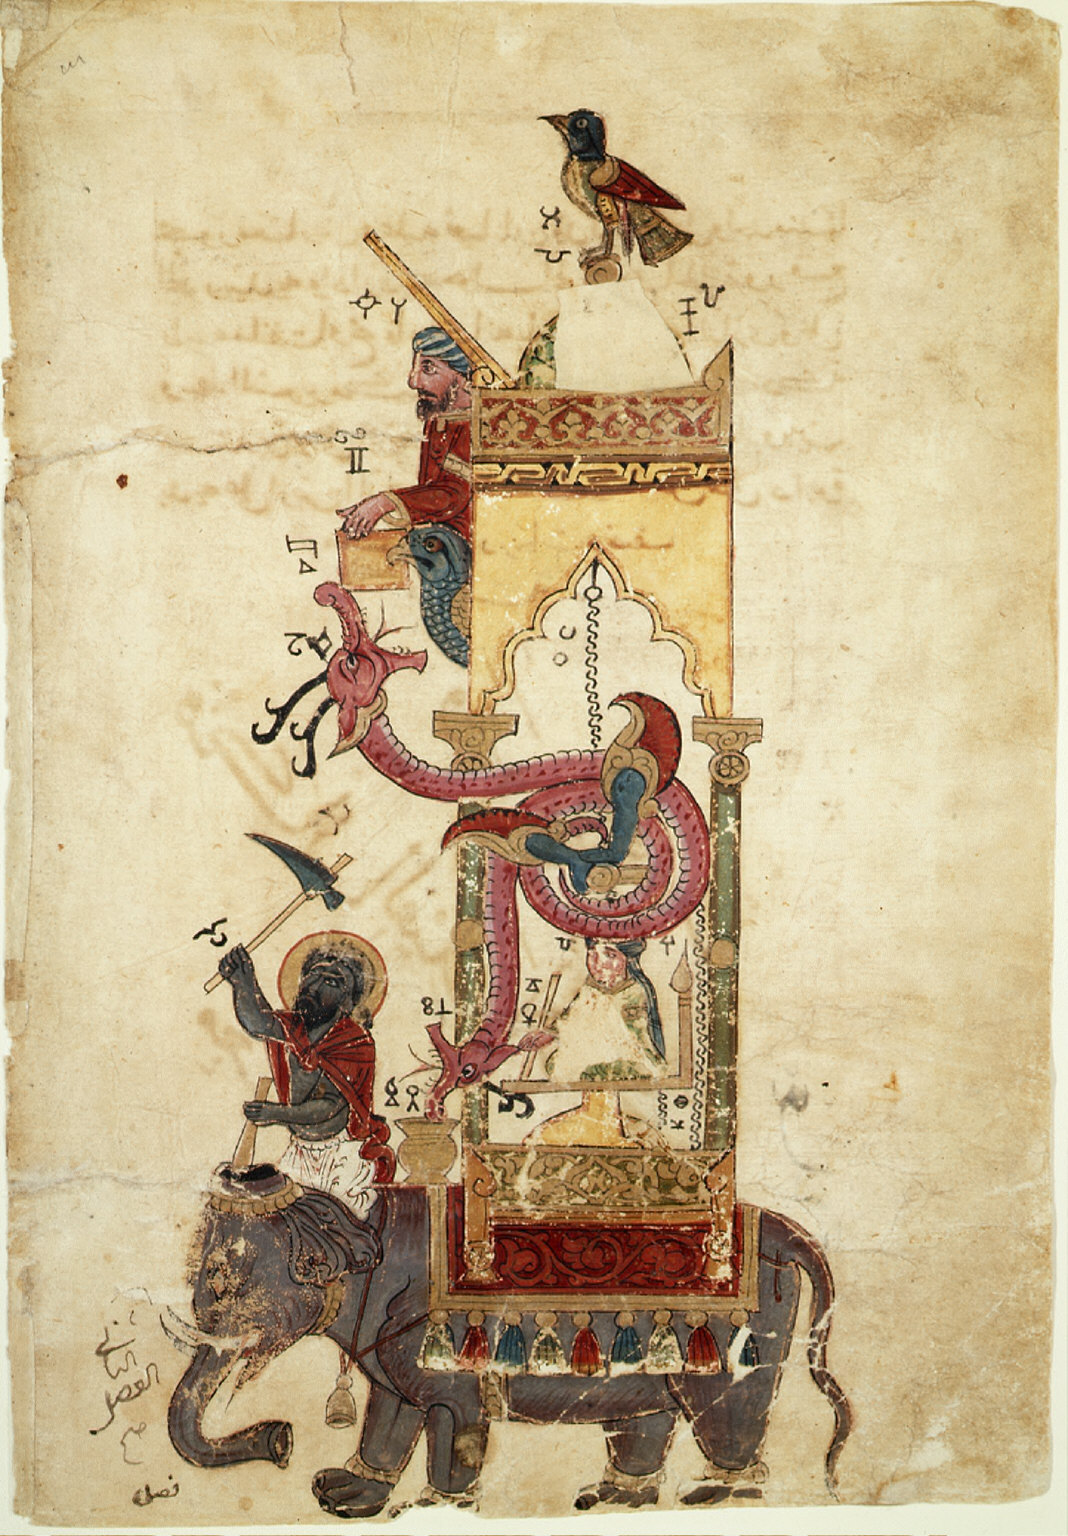 The Elephant Clock: Leaf from the Book of the Knowledge of Ingenious Mechanical Devices by al-Jazari